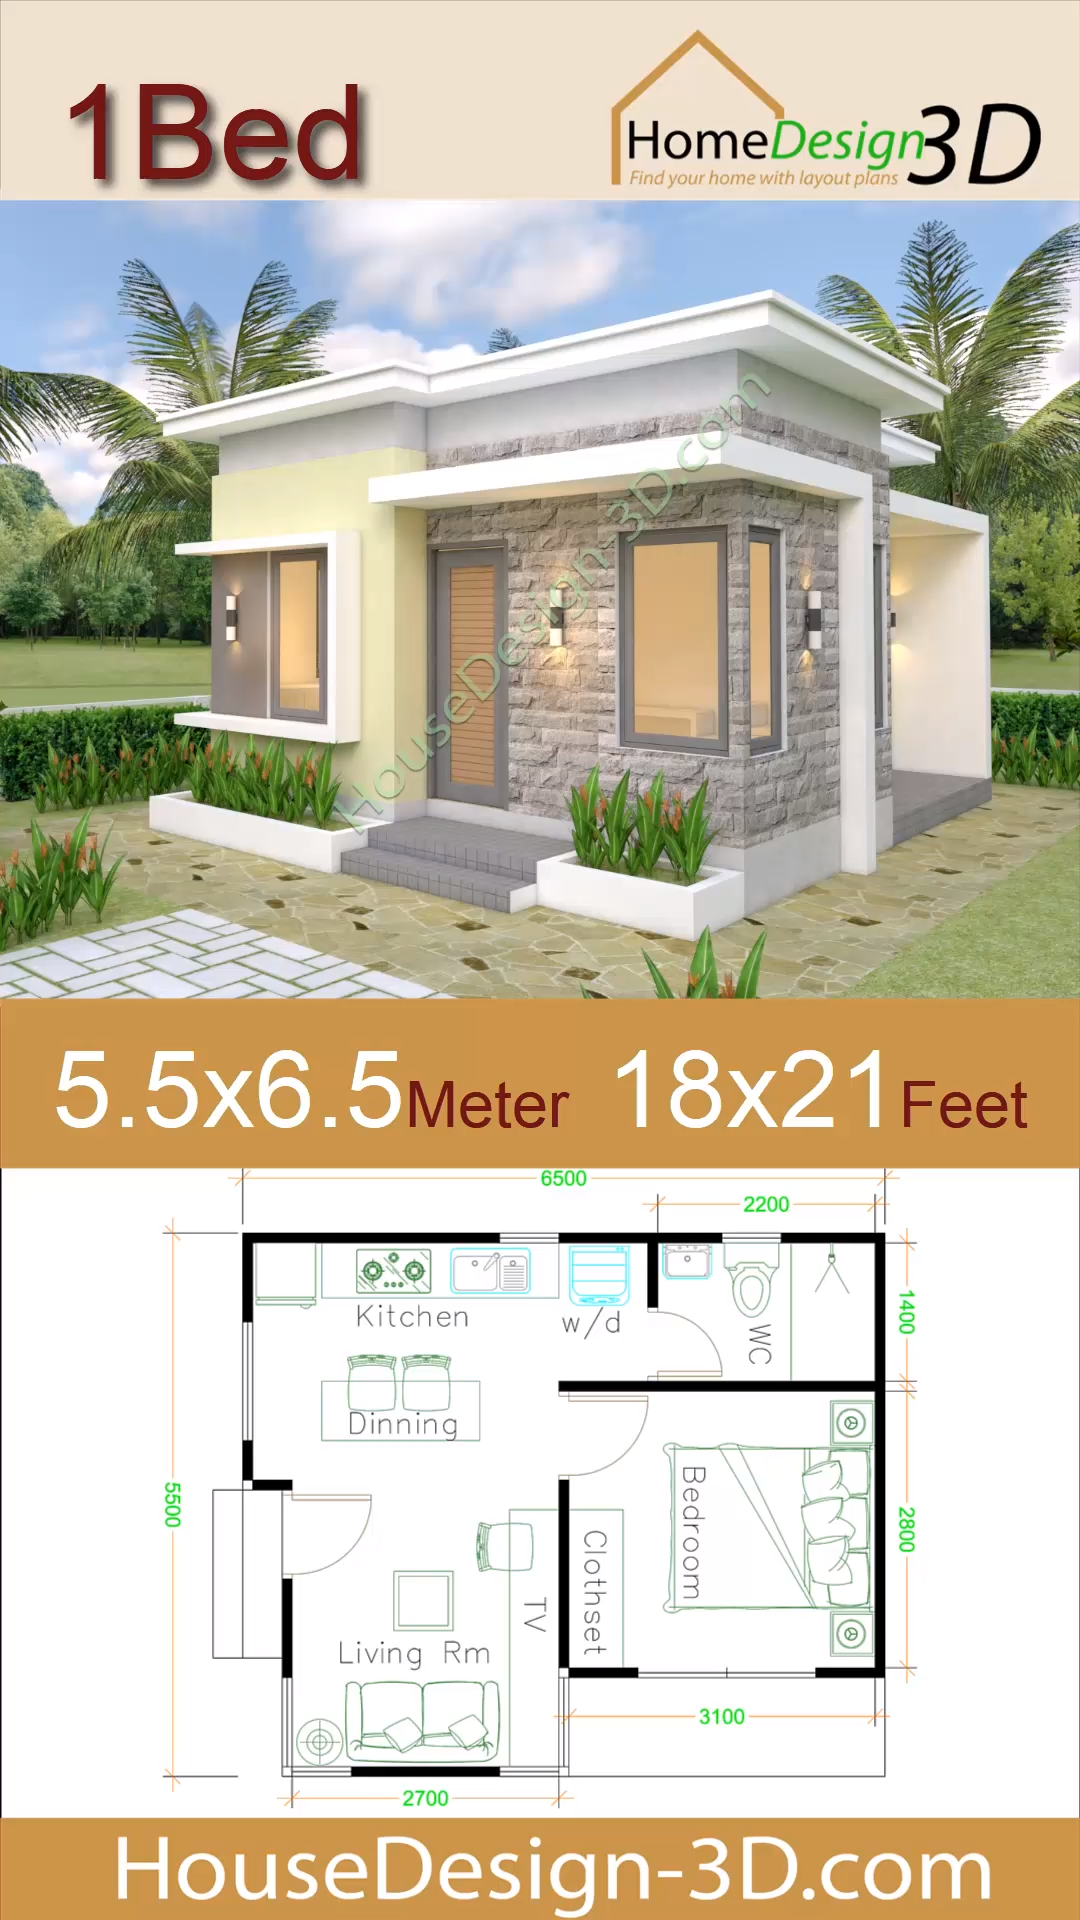 House Design Plans 5 5x6 5 With One Bedroom Flat Roof The House Has Car Parking And Garden Livi Small House Design Plans Small House Design Flat Roof House